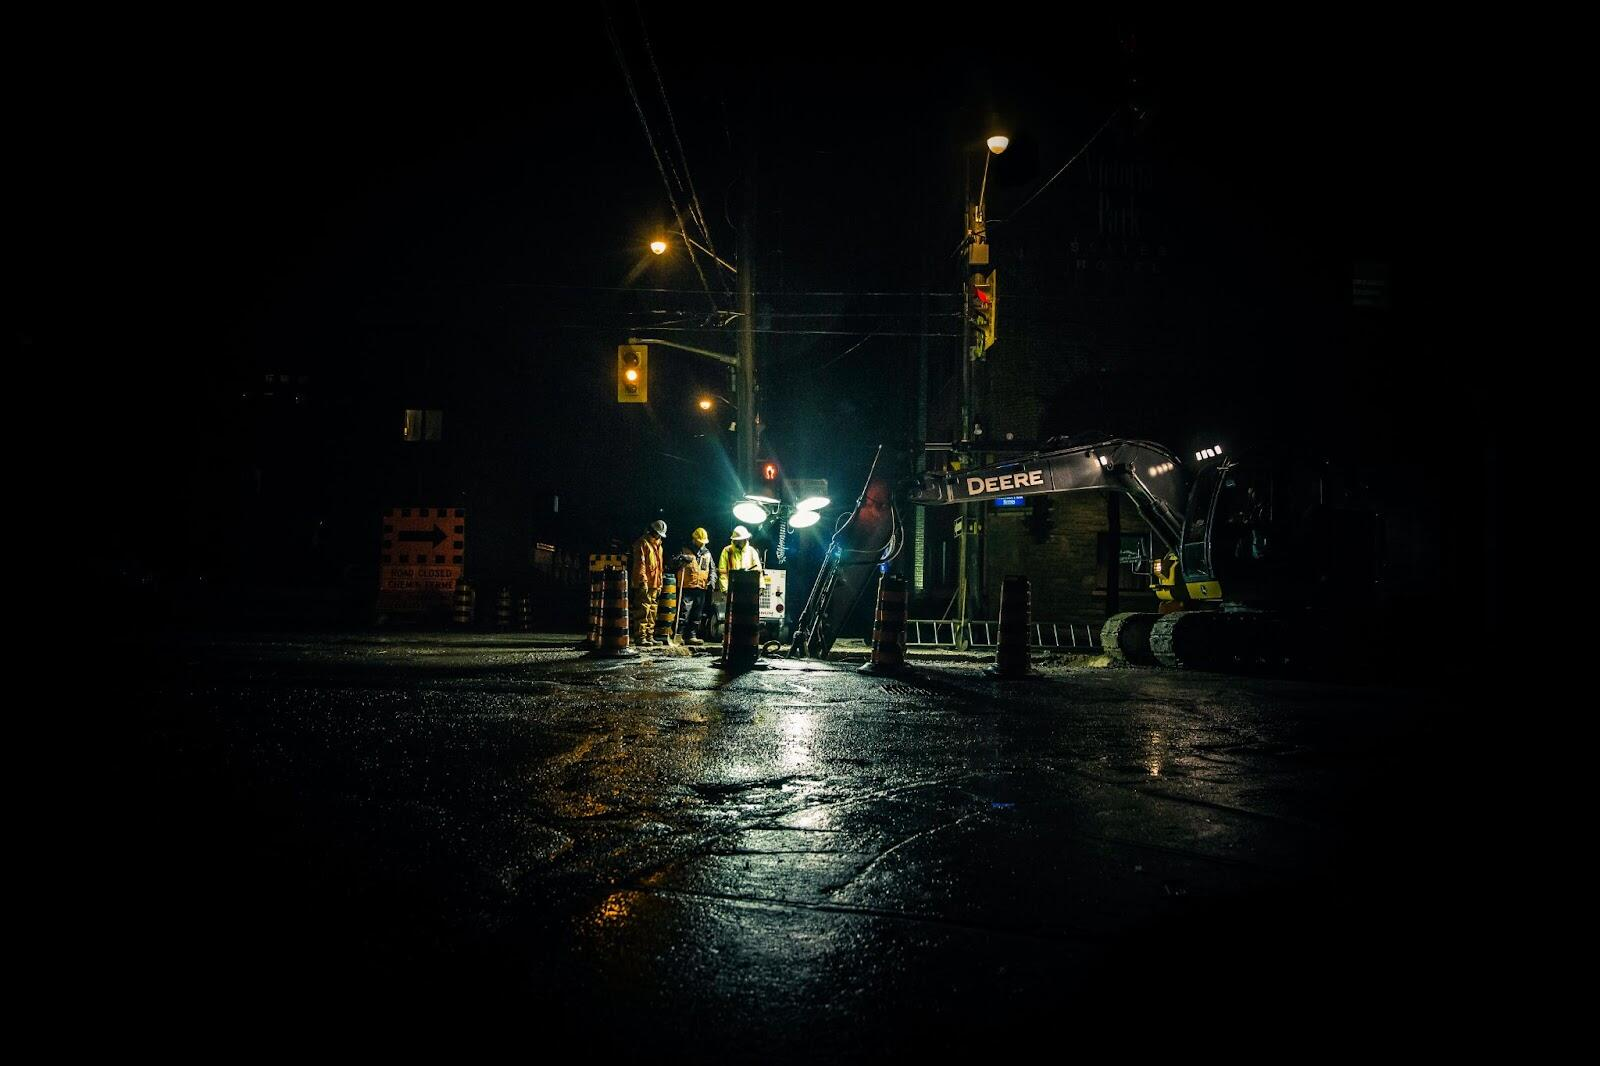 A road work zone at night with workers surrounded by traffic control supplies